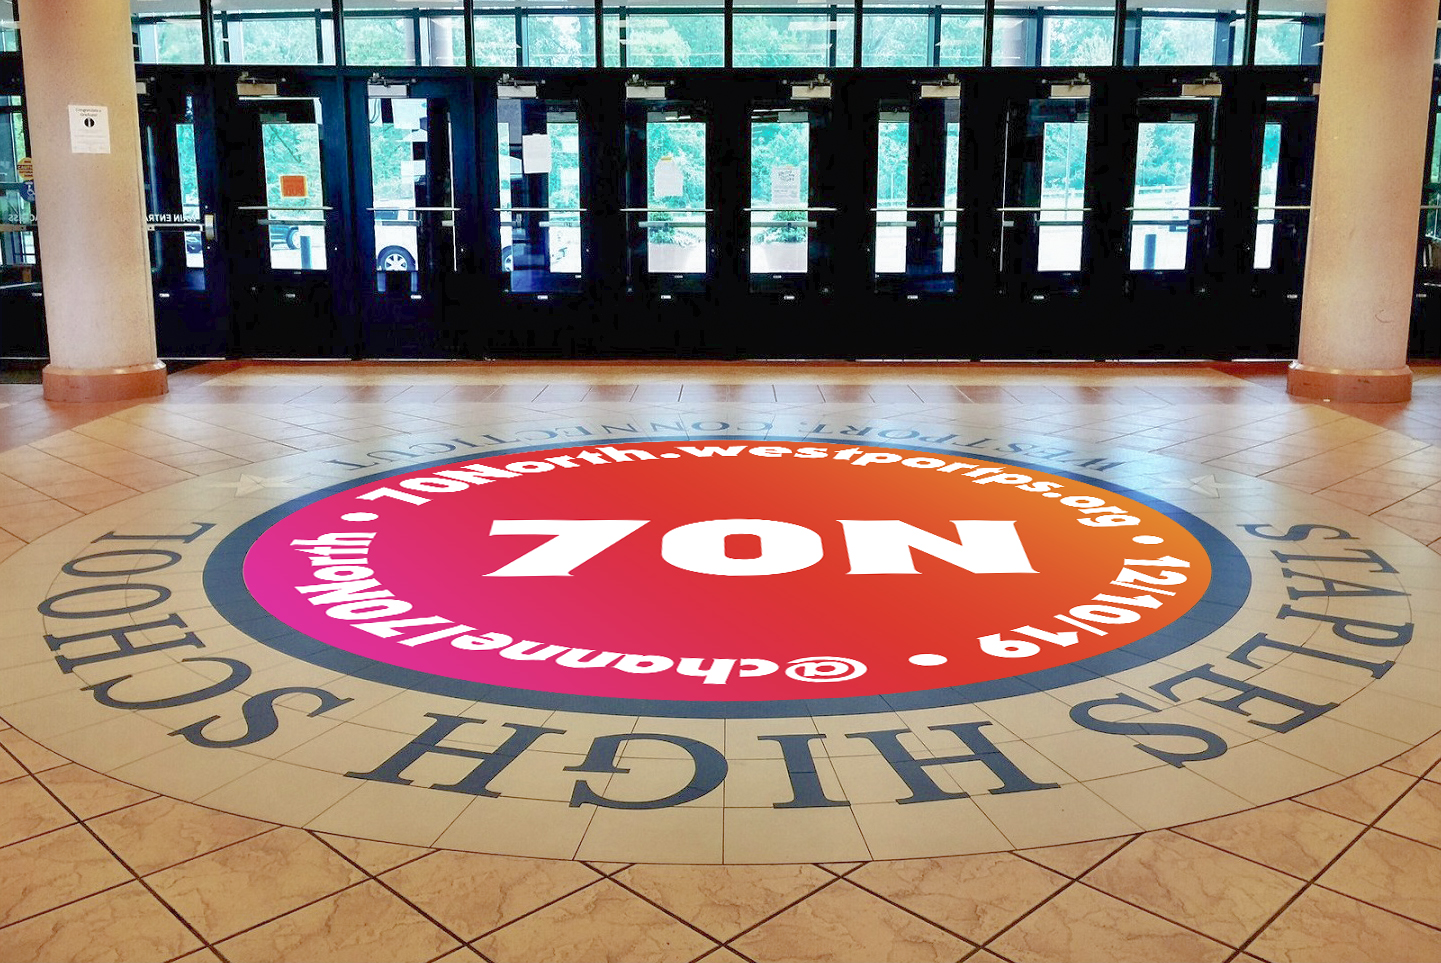 A conceptual lobby floor decal featuring the 70 North logo, the December 5th launch date, and the URL.